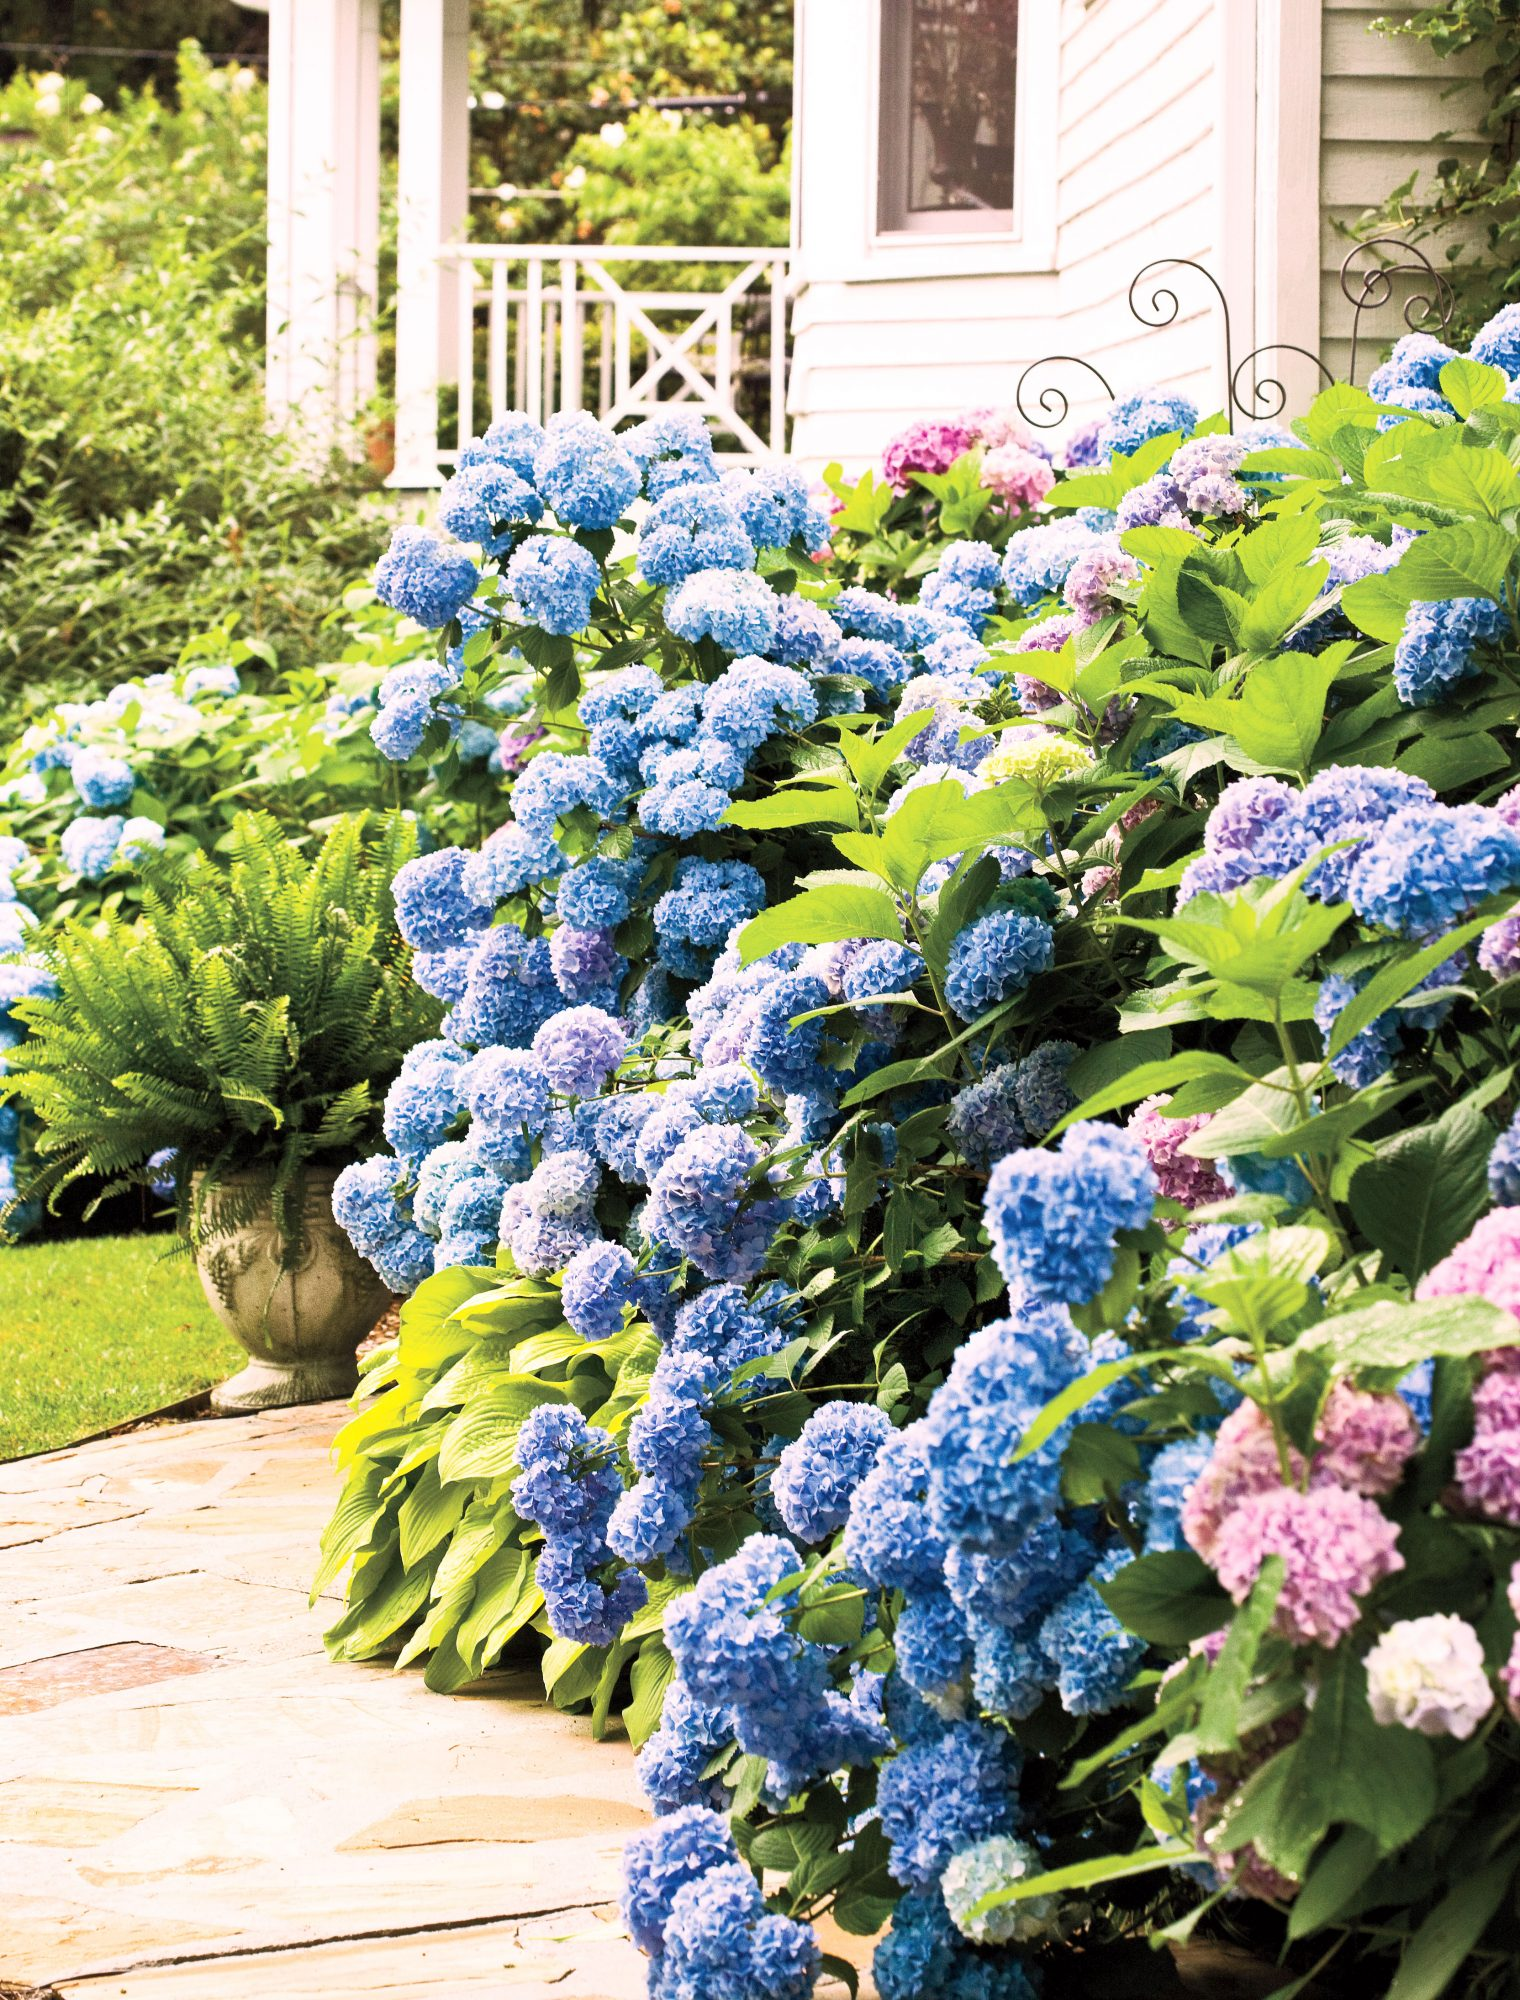 Blue and pink hydrangea shrubs against house